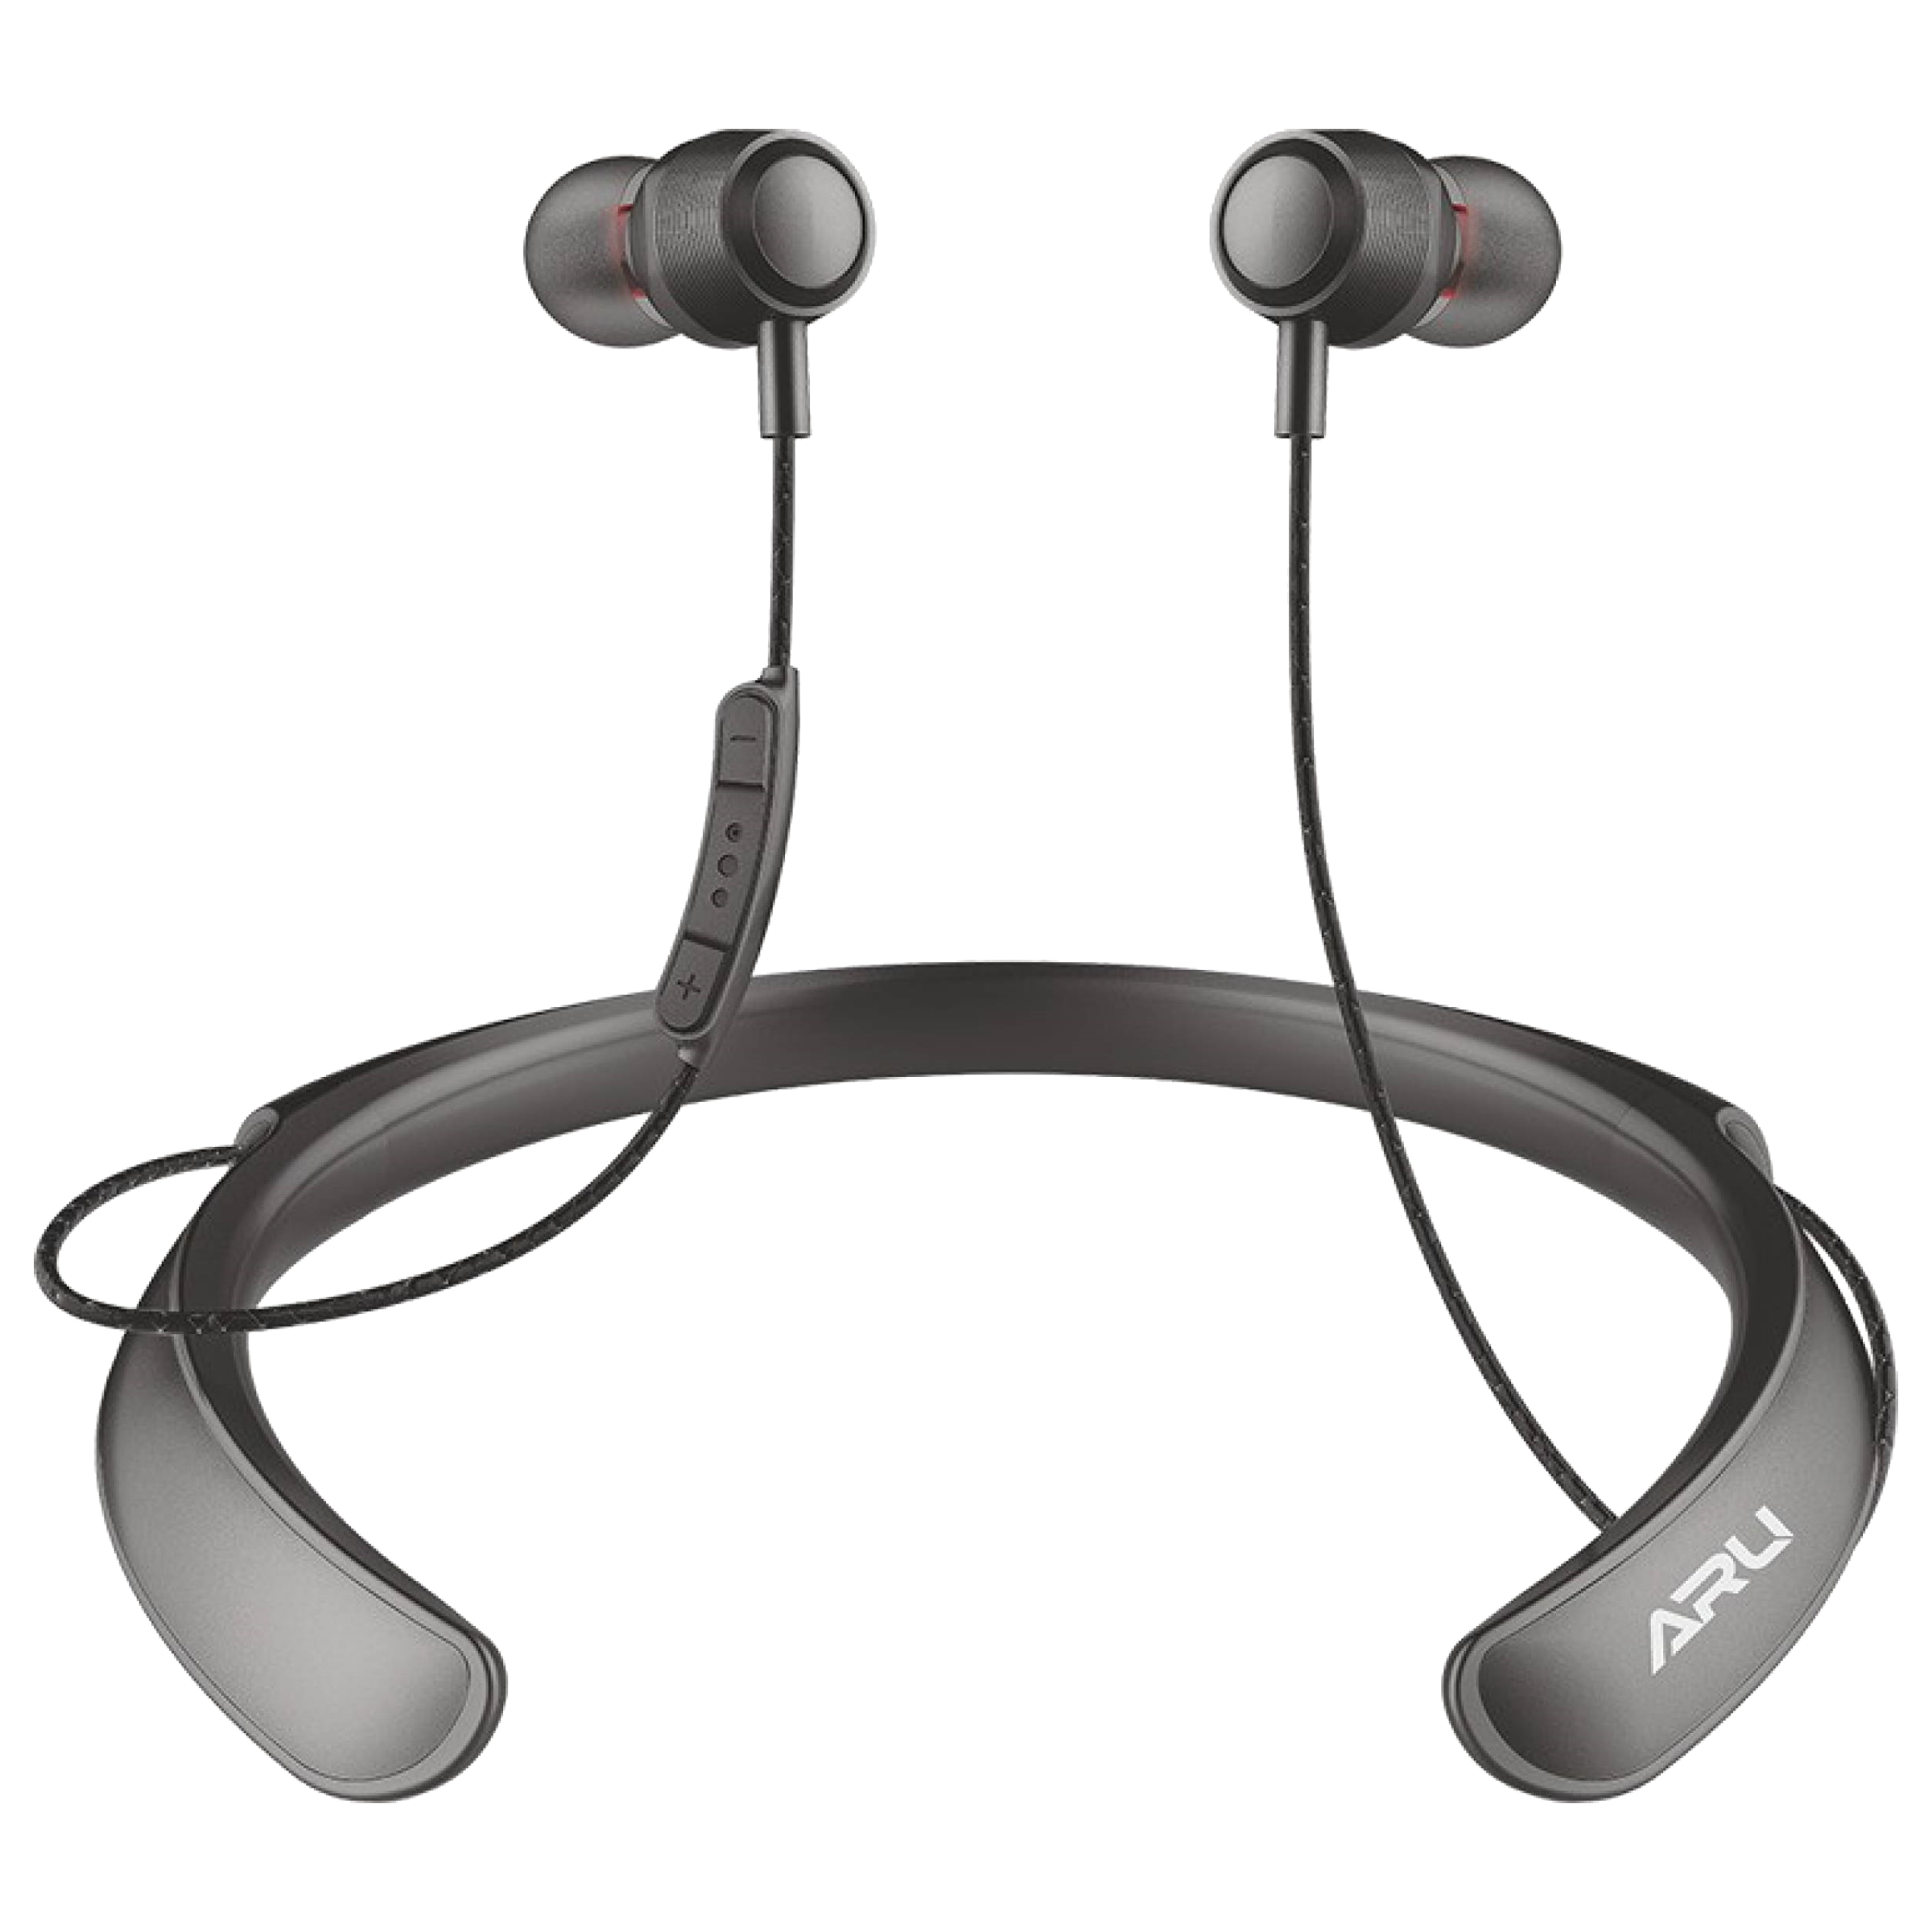 ARU In-Ear Active Noise Cancellation Wireless Earphone with Mic (Bluetooth 5.0, Water Resistant, ANB-1117, Black)_1